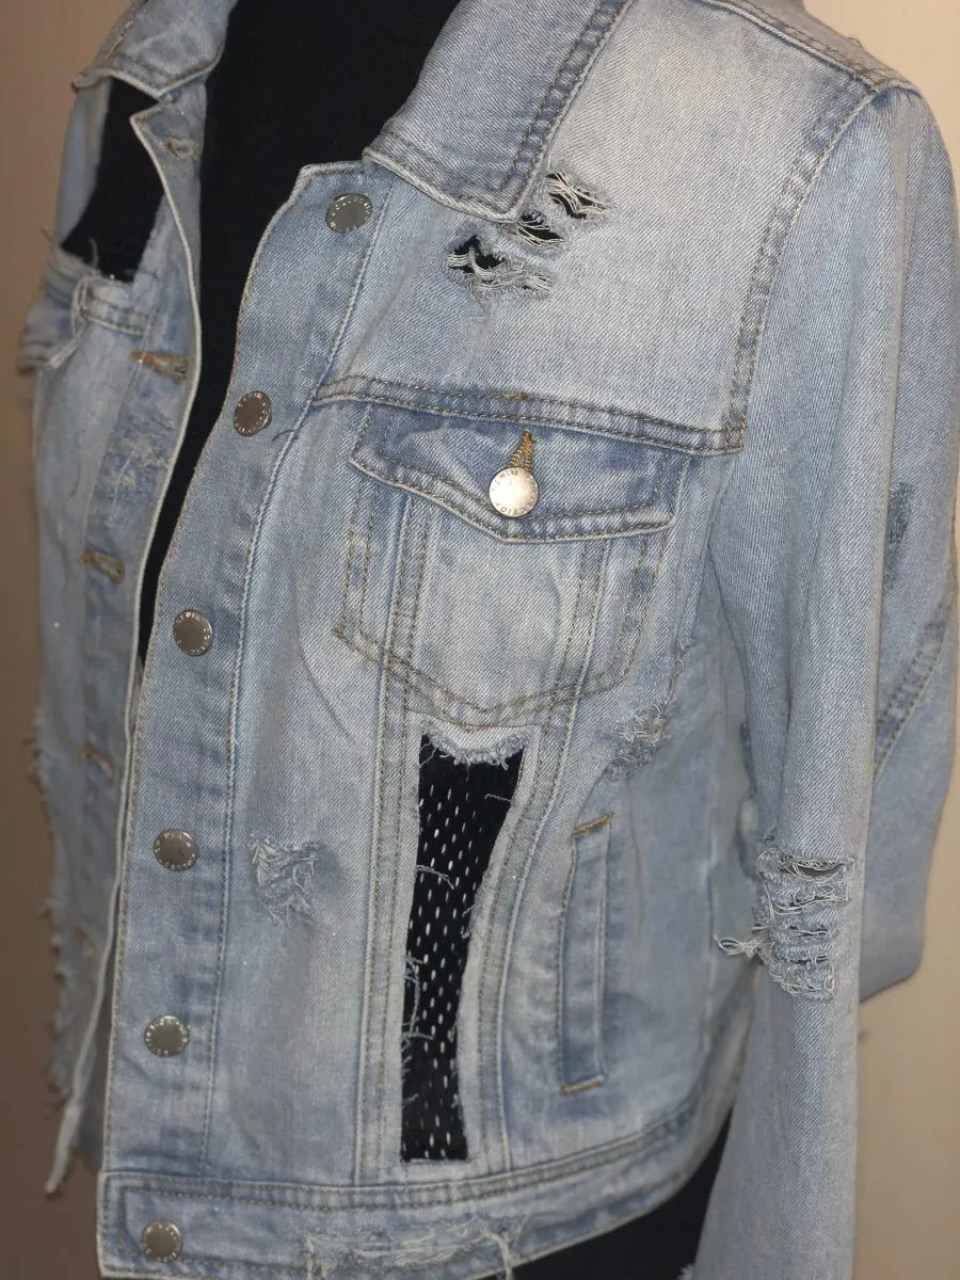 DIY Distressed Denim Jacket - www.kateyblaire.com